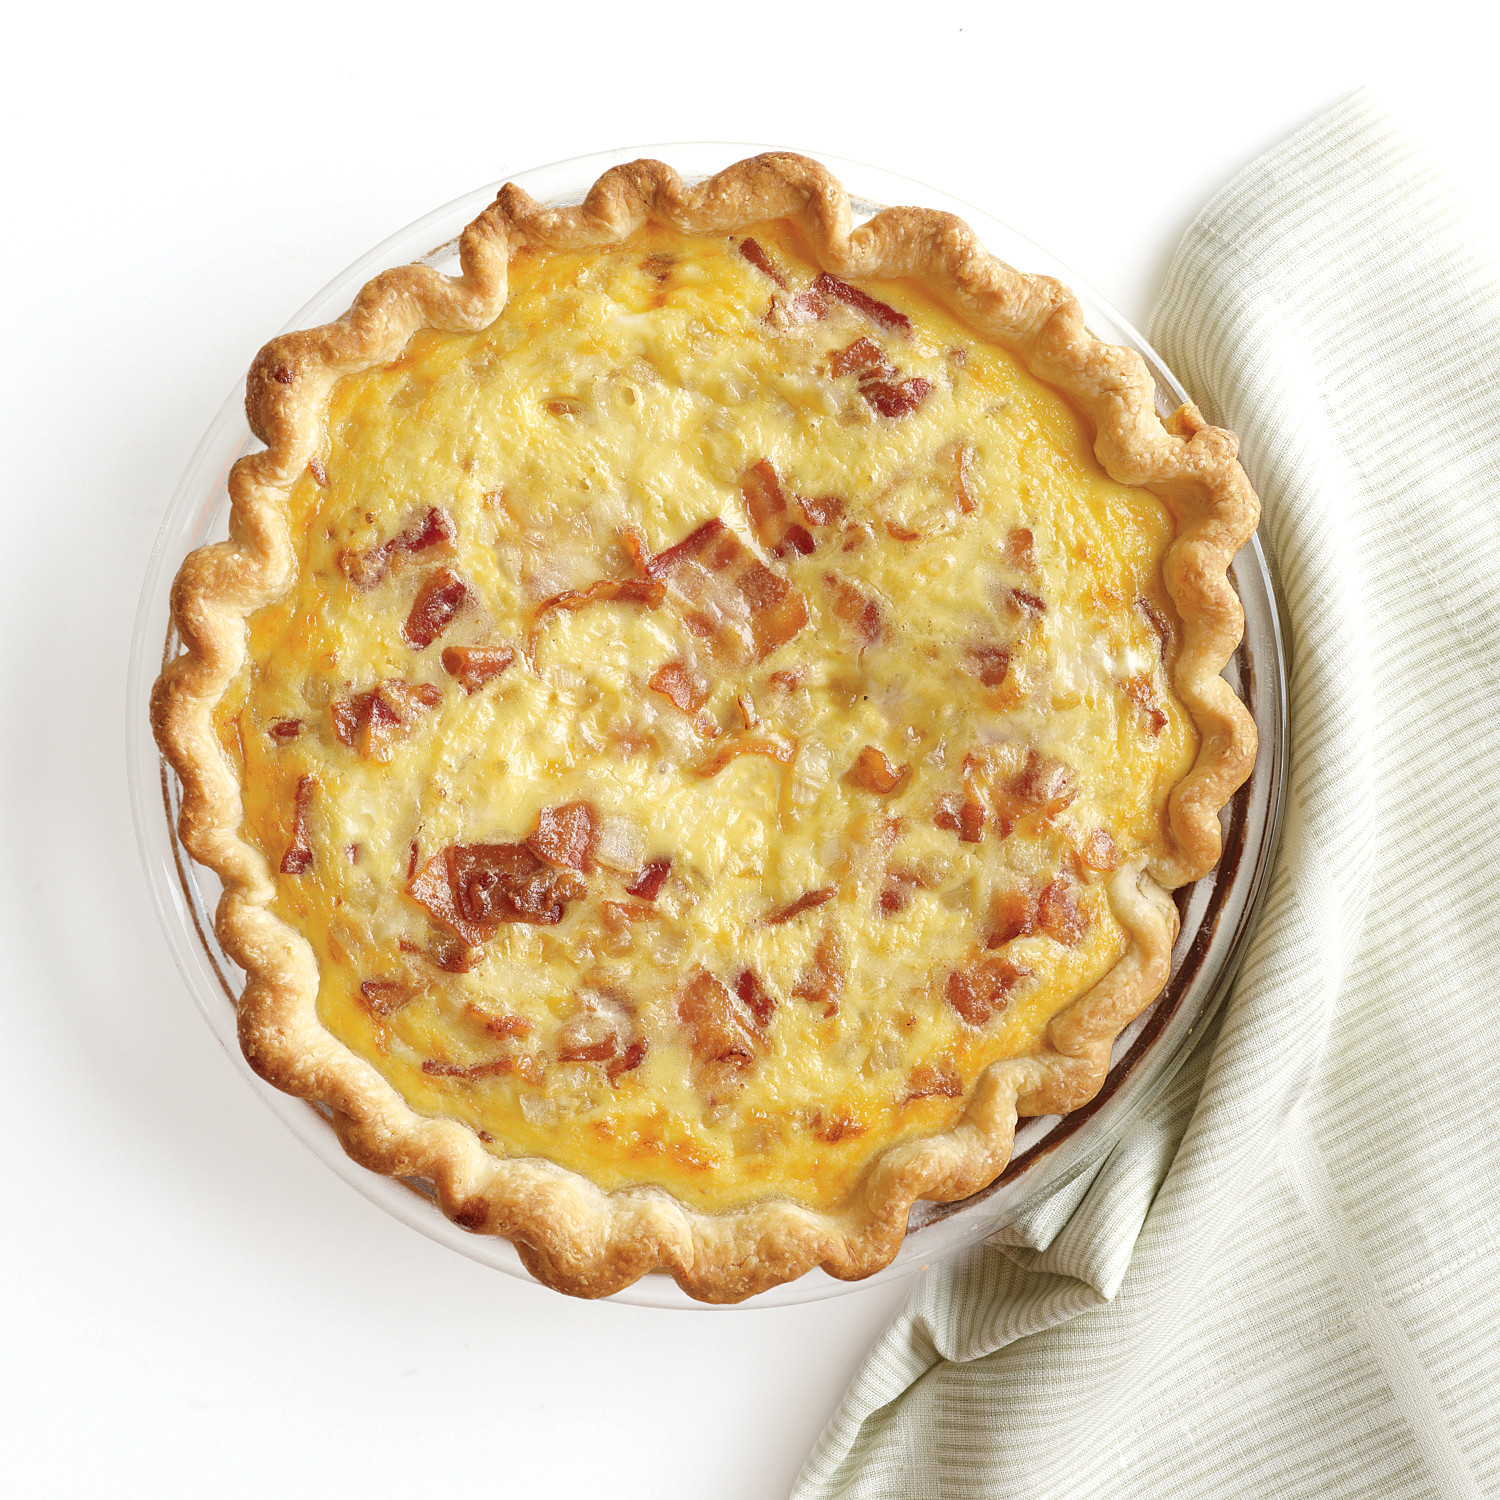 bacon-cheese-quiche-med107742_sq.jpg?itok=16TE9Hkl